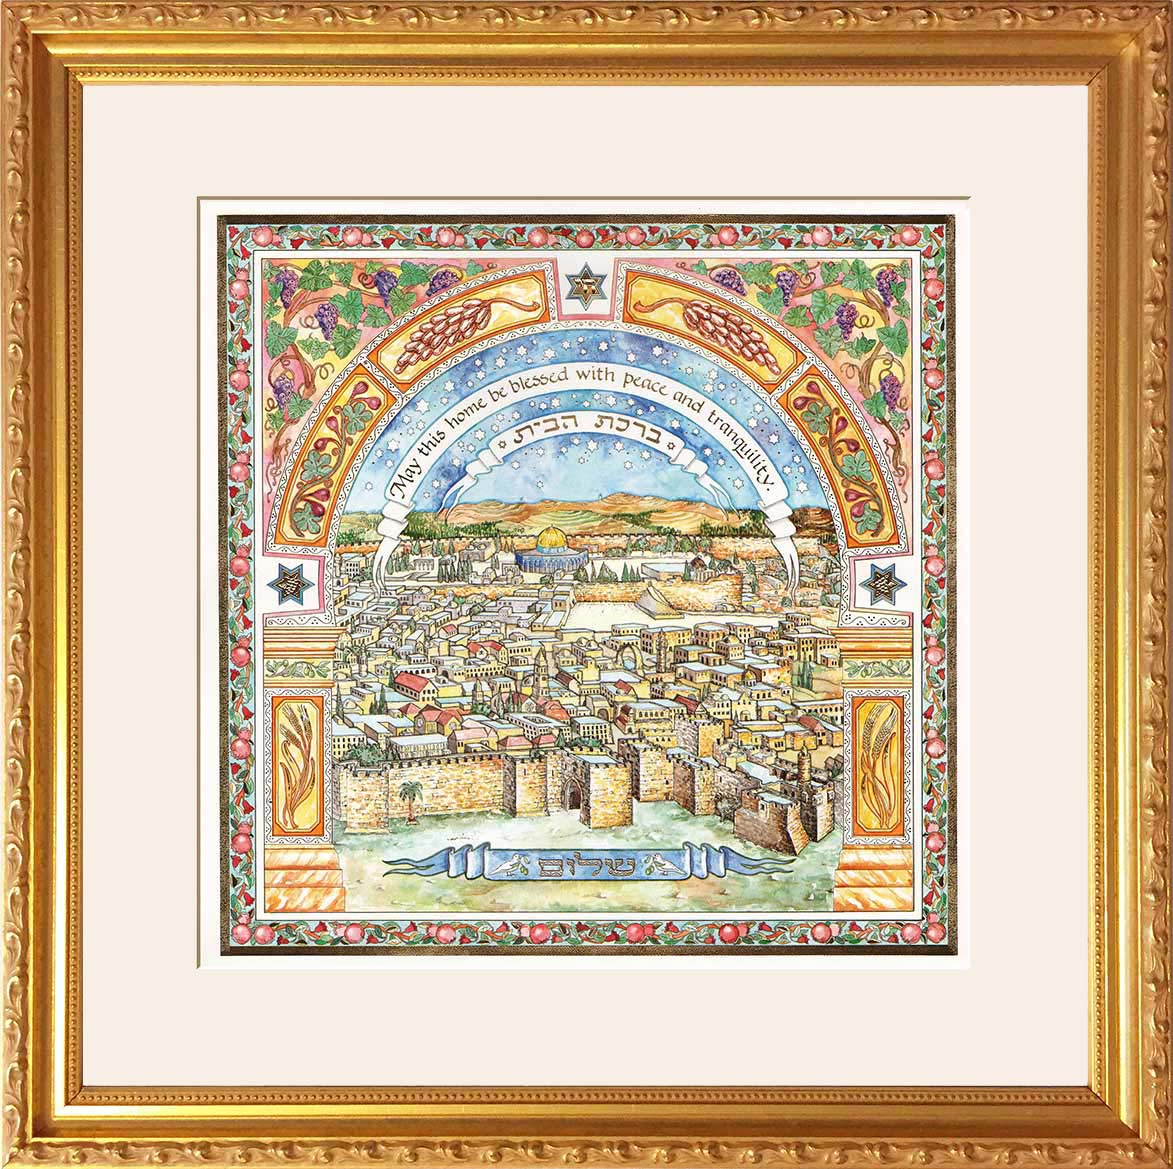 Home Blessing Jerusalem Caspi Cards Amp Art